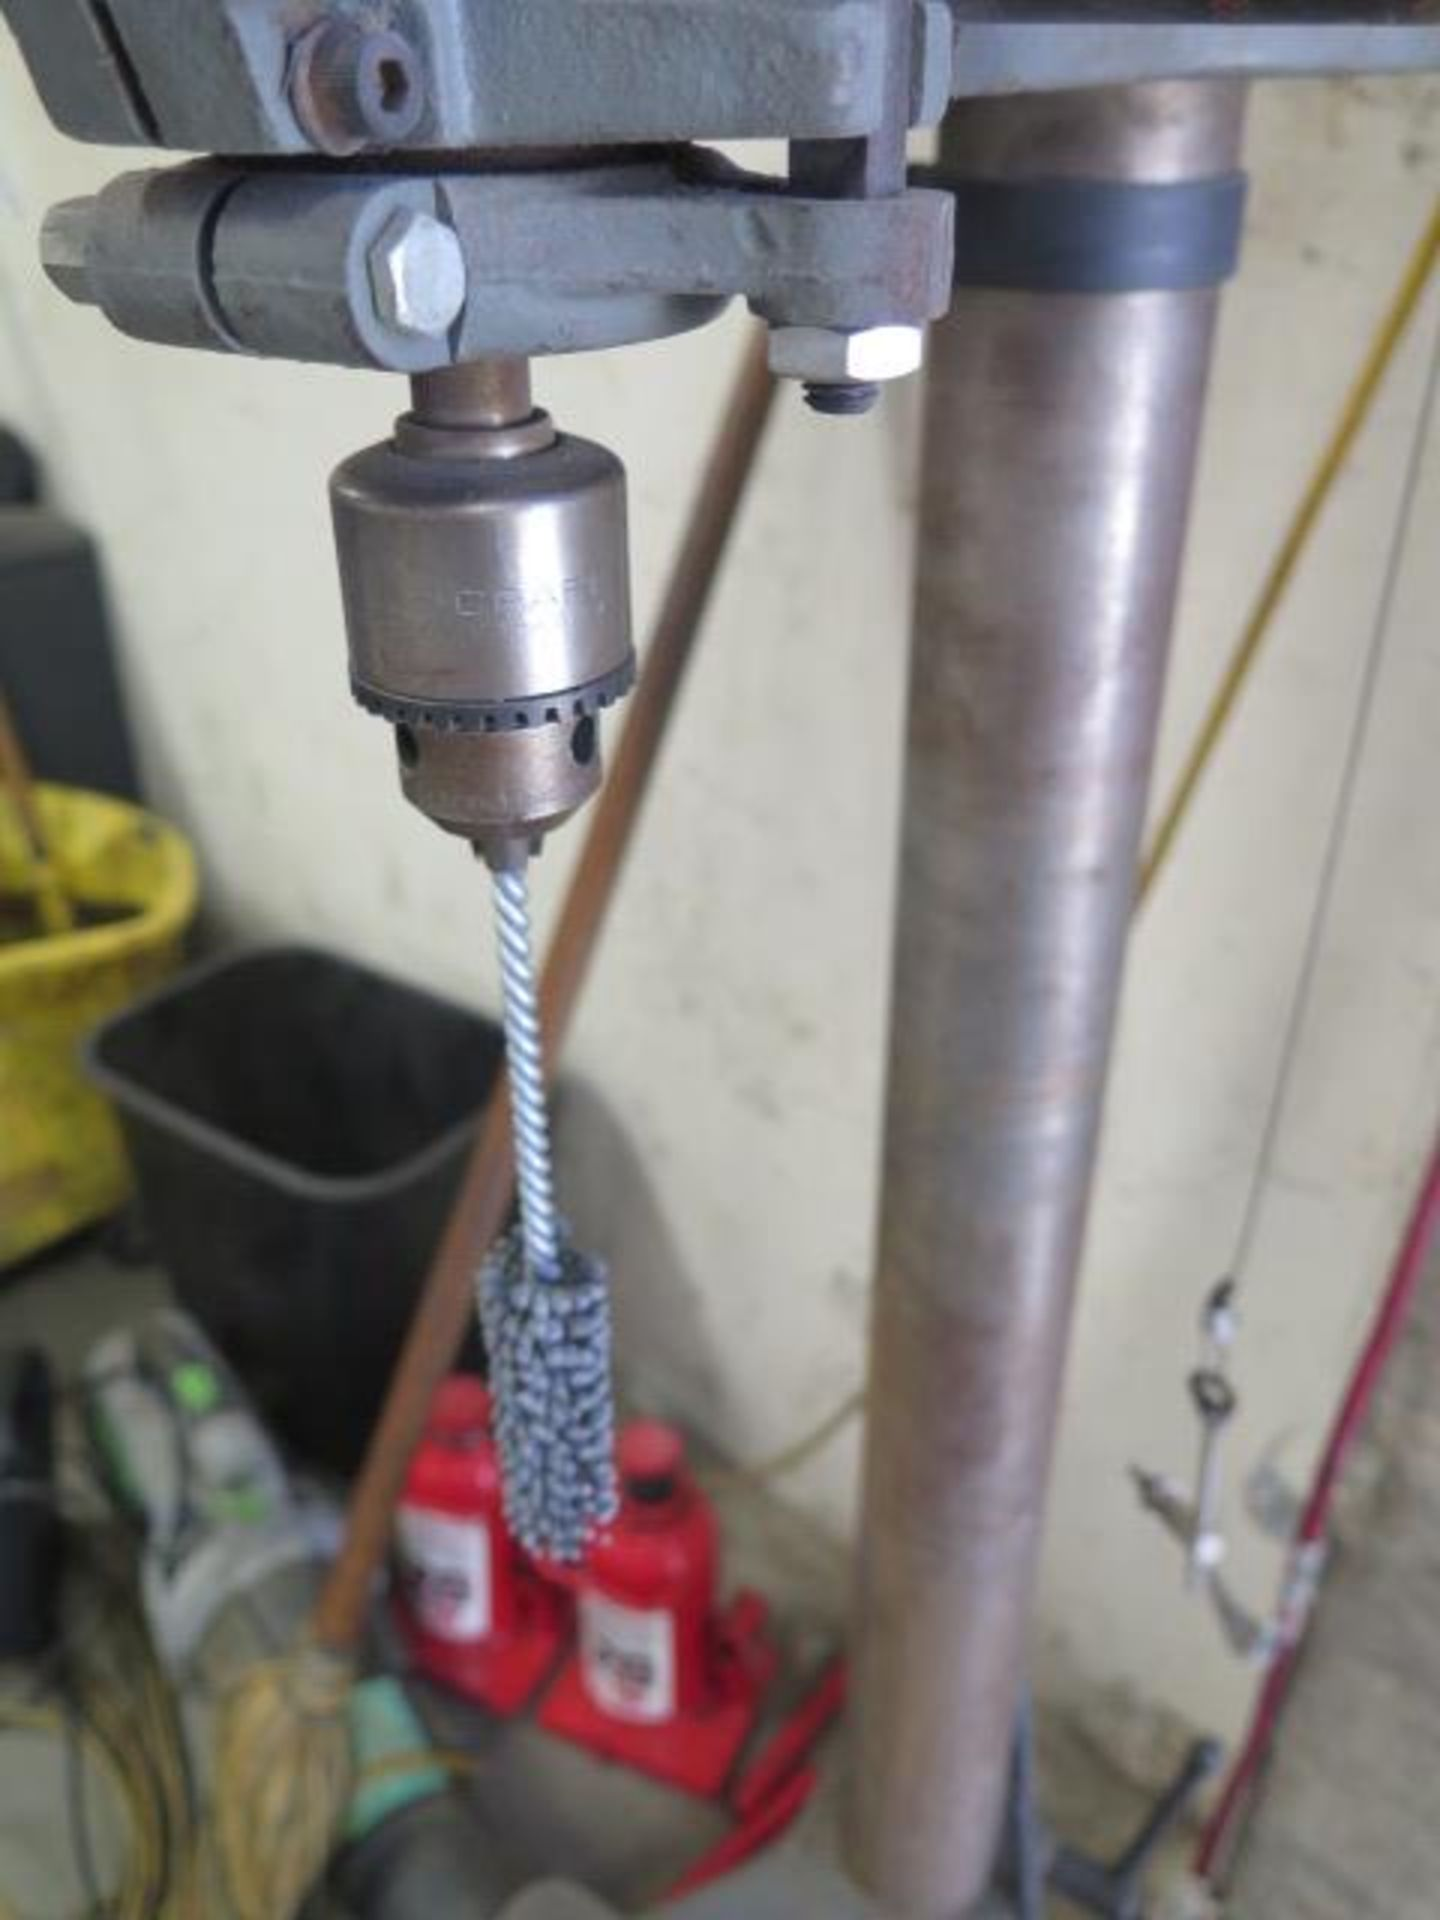 Rockwell Pedestal Drill Press (SOLD AS-IS - NO WARRANTY) - Image 4 of 6